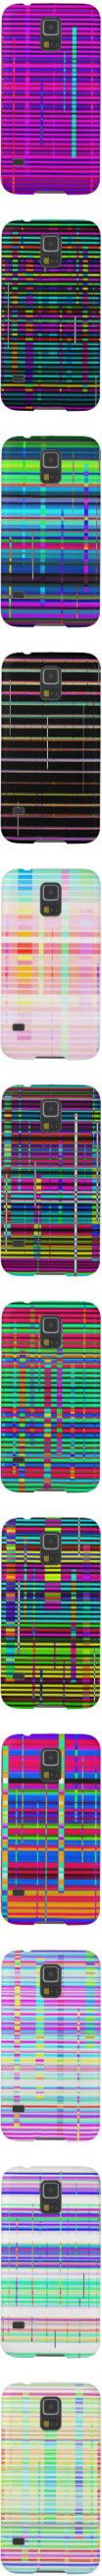 #Robert #S. #Lee #galaxyS5 #galaxyS4 #case #cover #skin #colours #art #artist #graphic #mobile #cellphone #men #women #ladies #kids #children #boys #girls #love #design #squares #customizable #landscape #urban Re-Created Urban Landscape by Robert S. Lee by robertsleeart on Polyvore featuring women's fashion, accessories and tech accessories